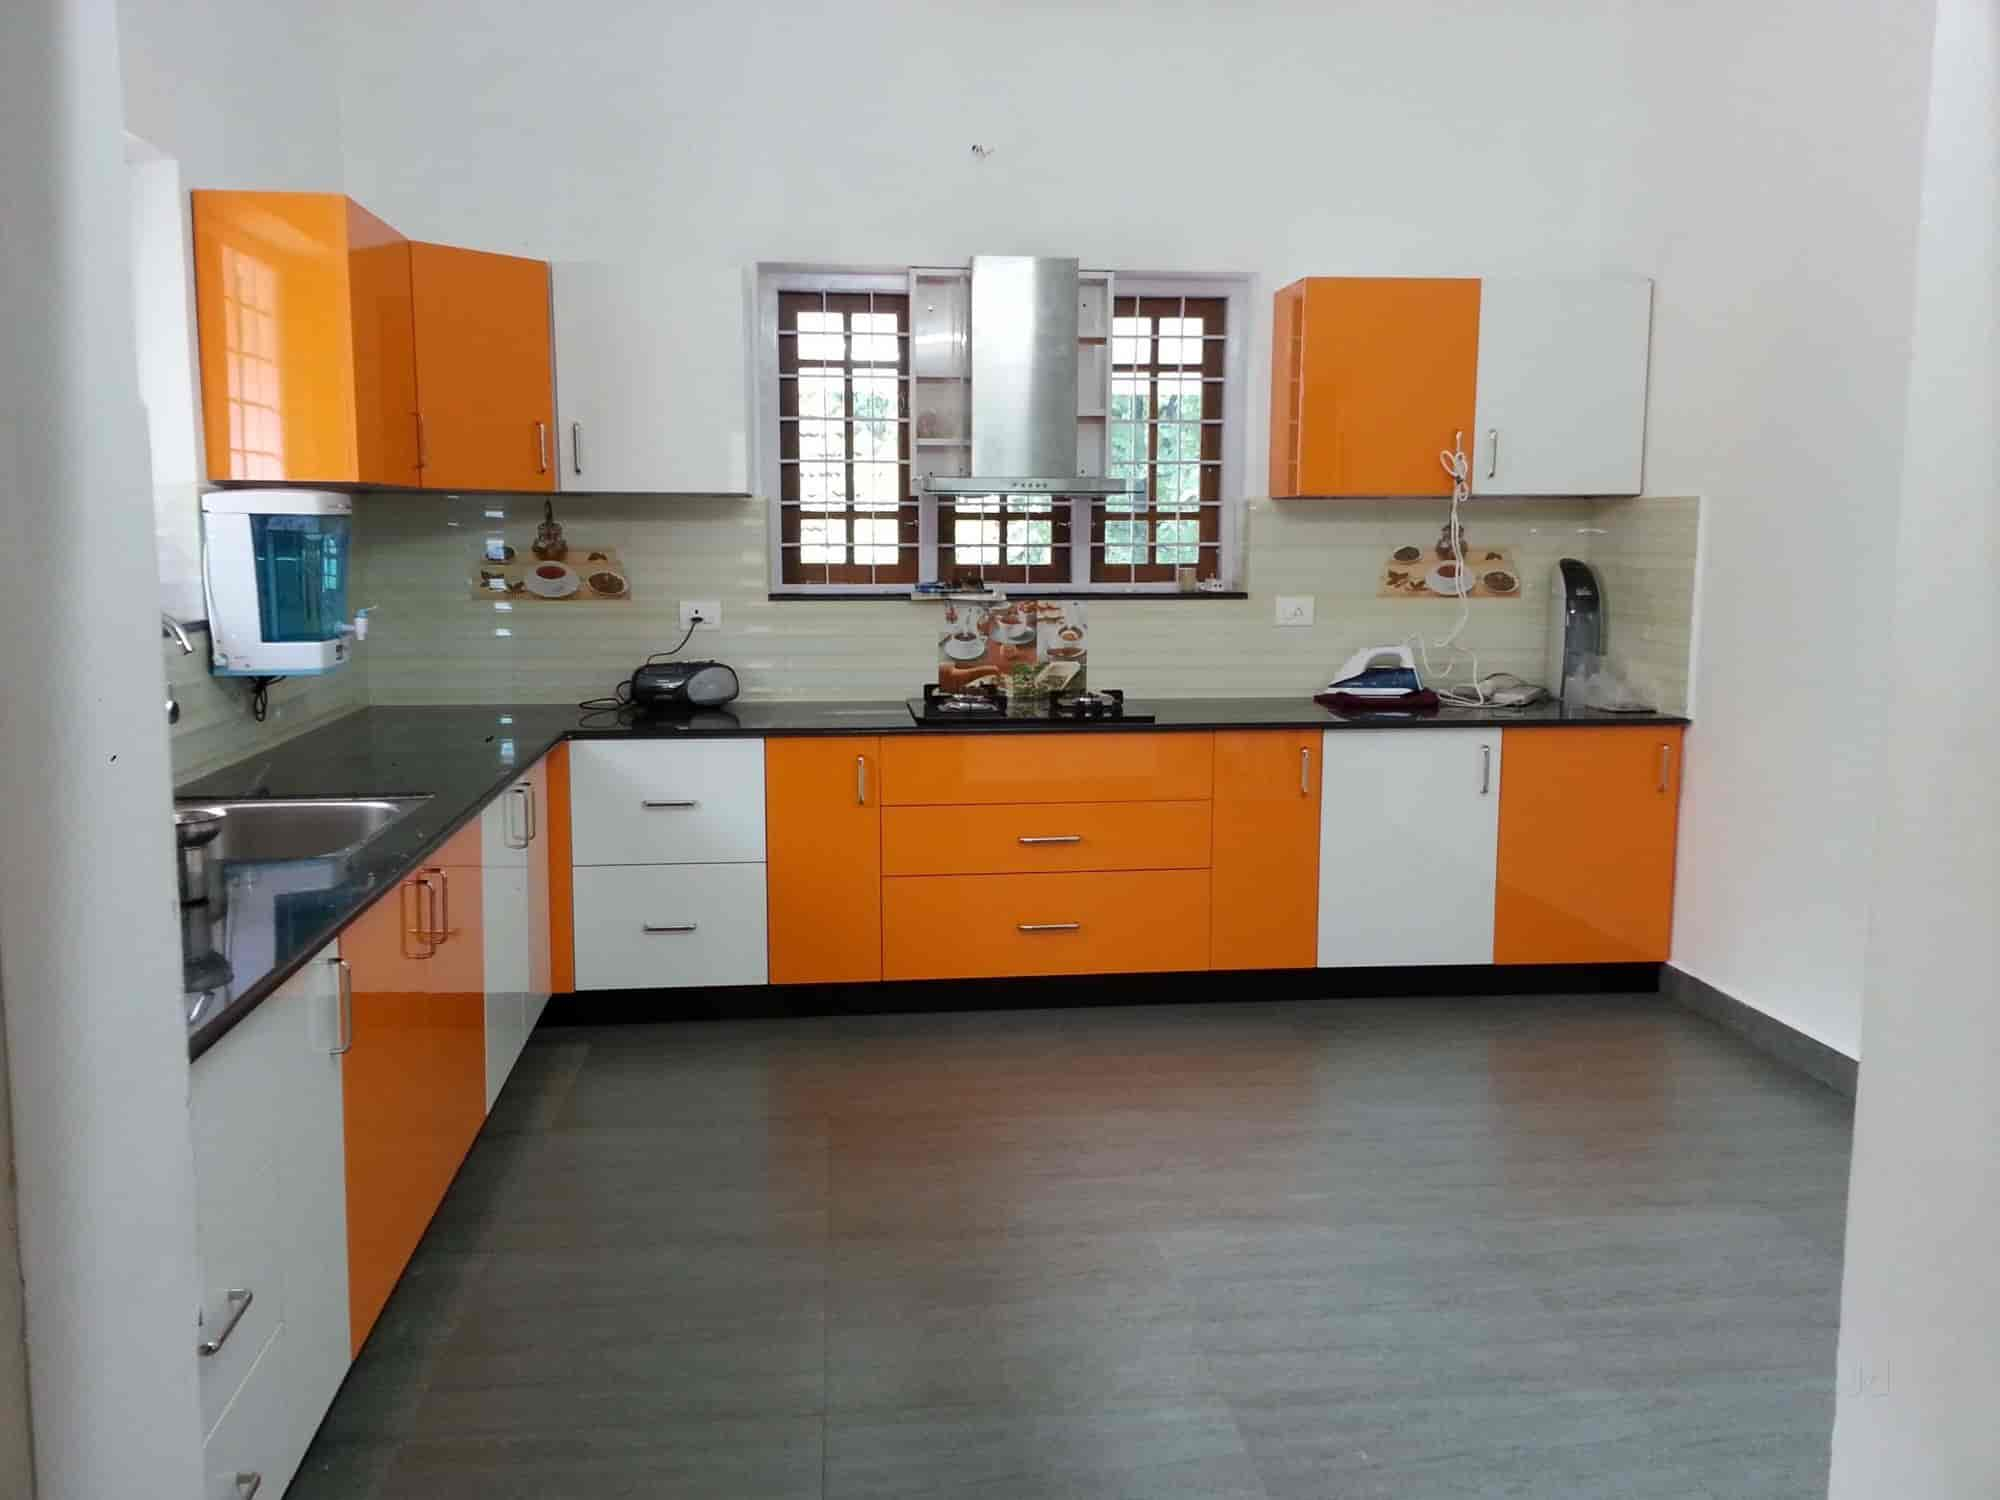 Conint Home Decor Photos, Srigandhada Kaval, Bangalore- Pictures